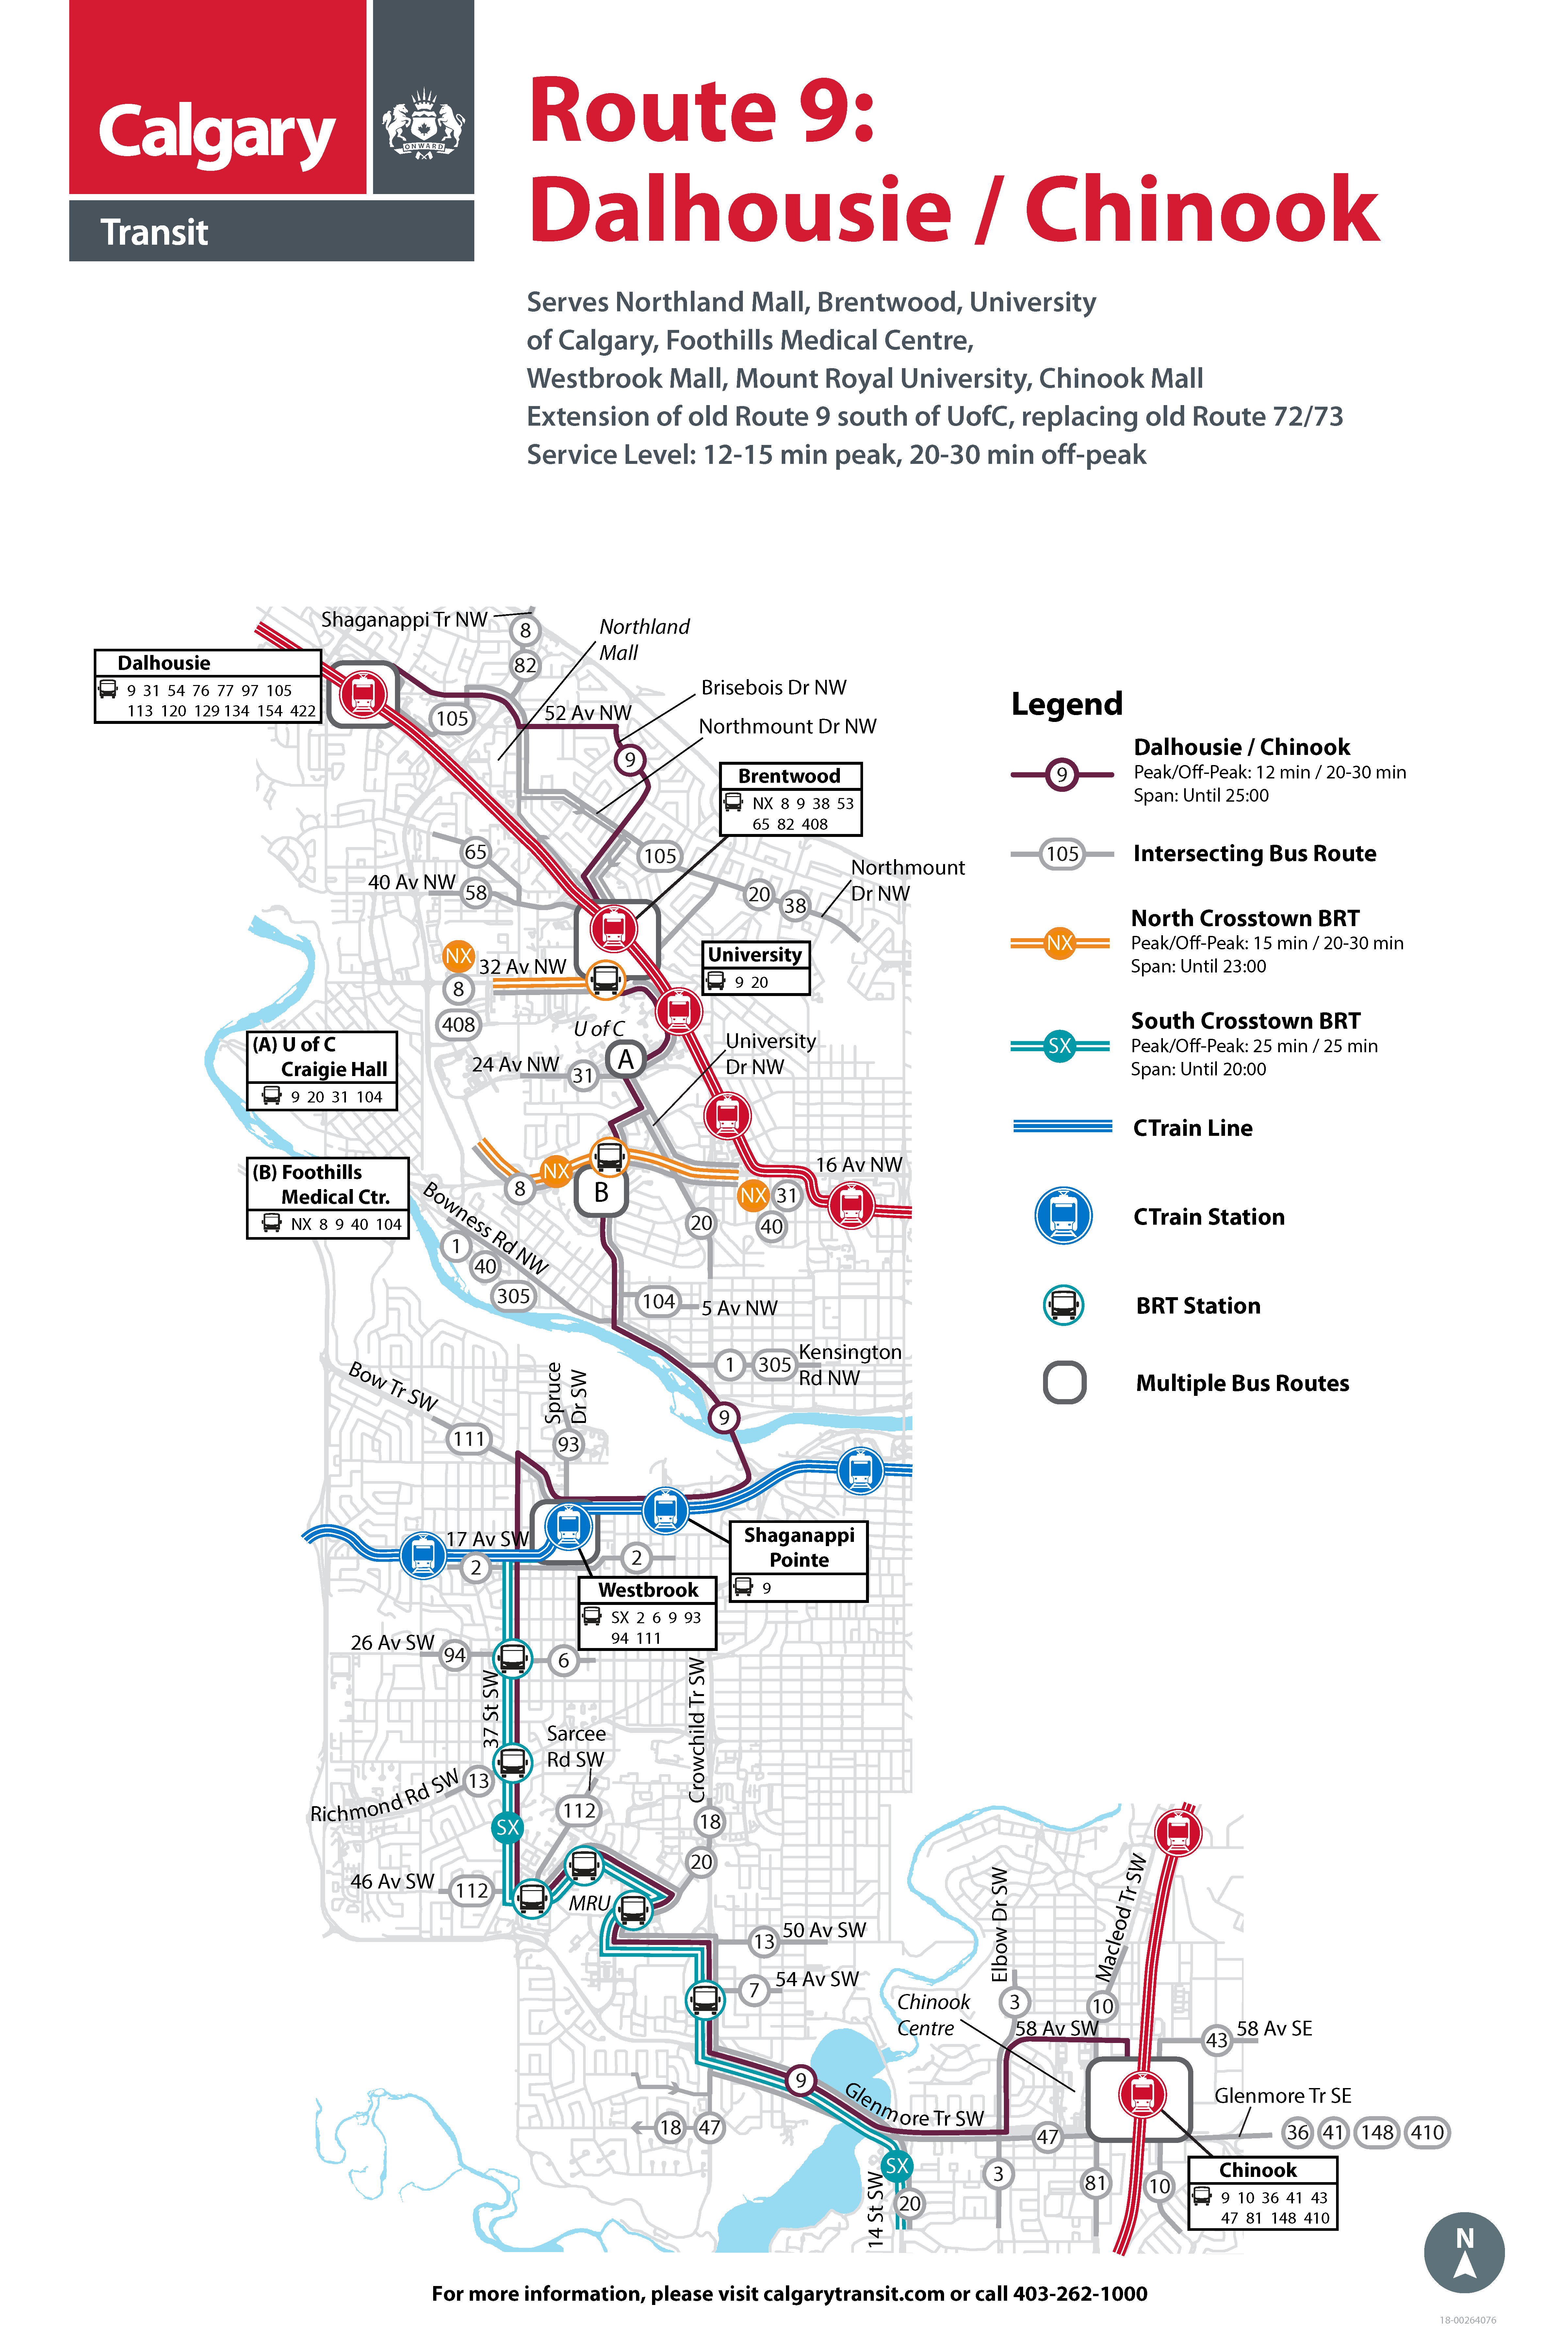 2018 transit service review :: engage